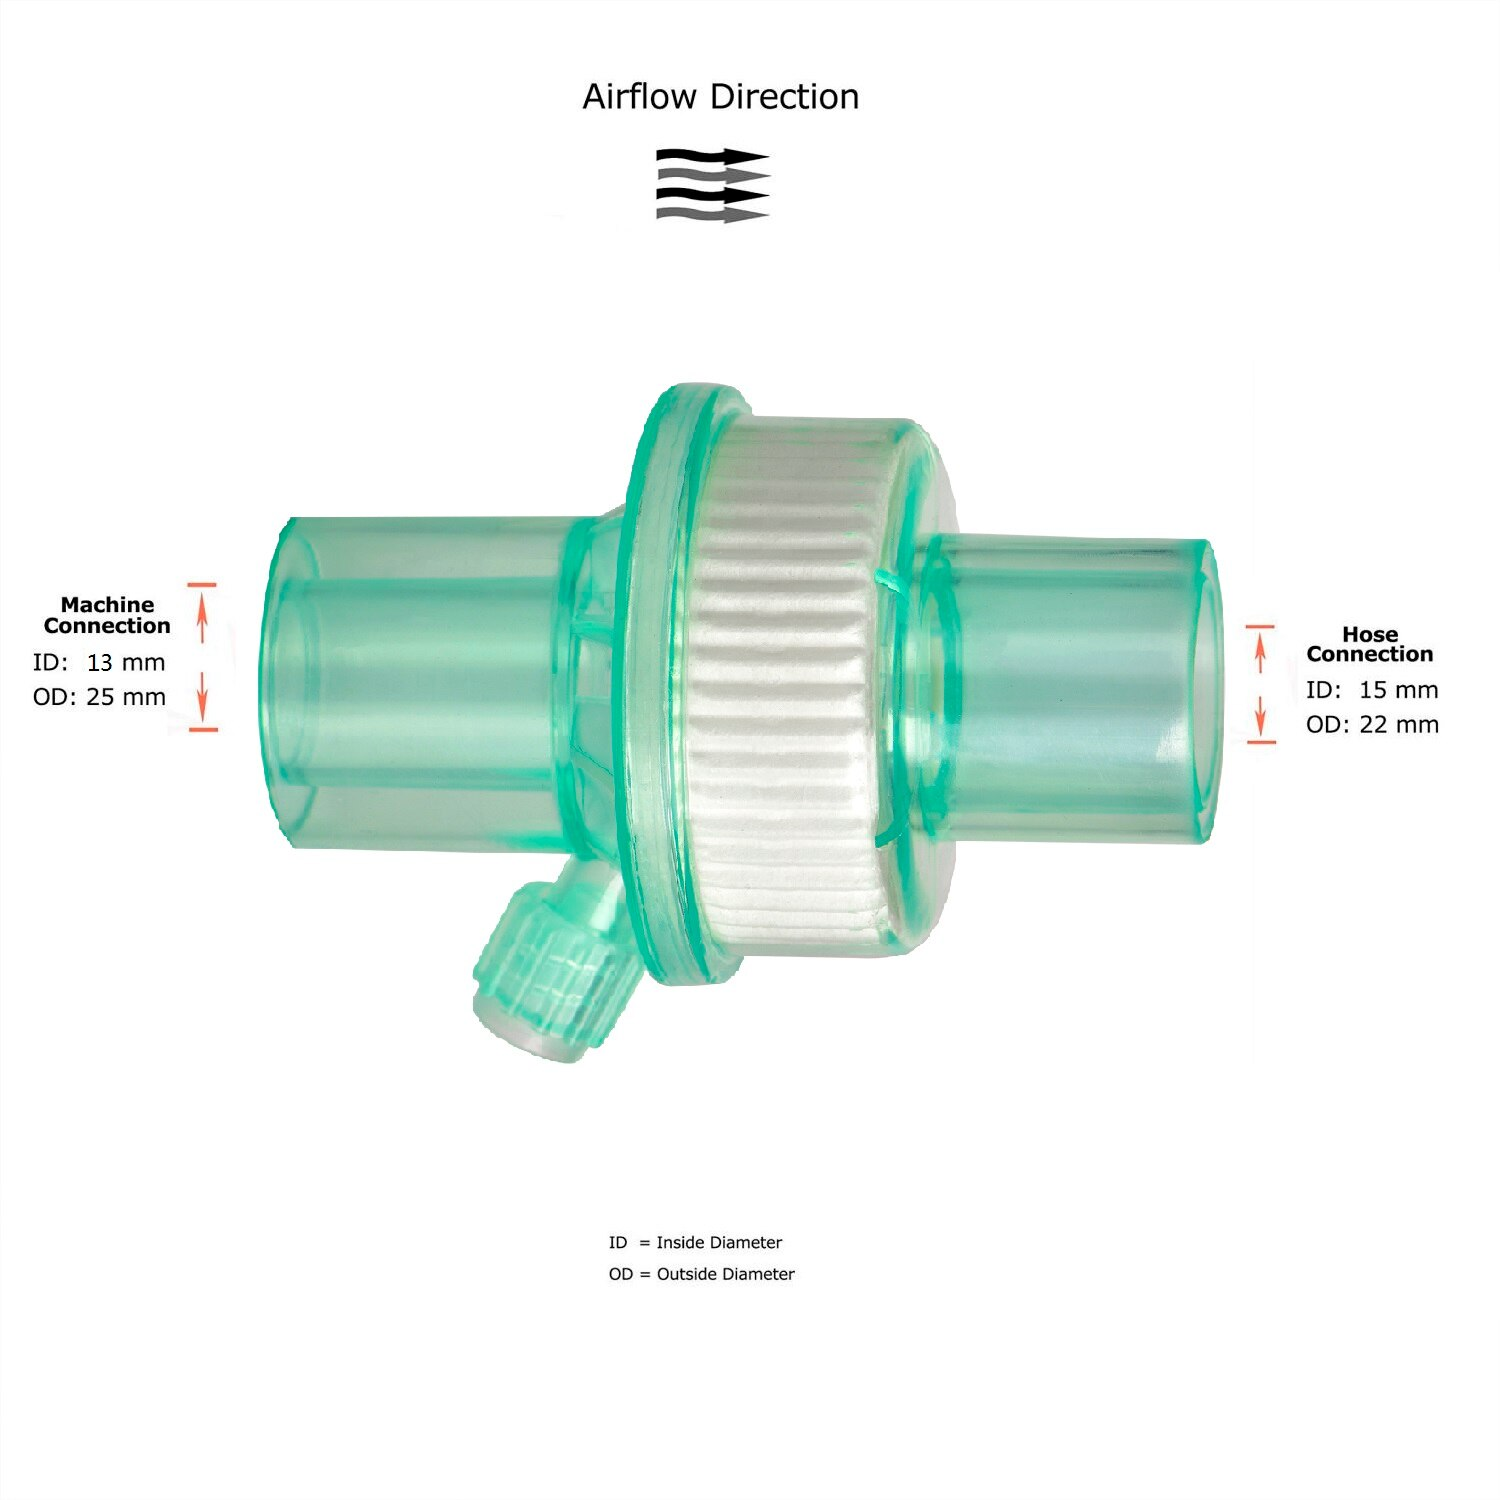 Bacterial Viral Filter for CPAP and BiPAP Machines